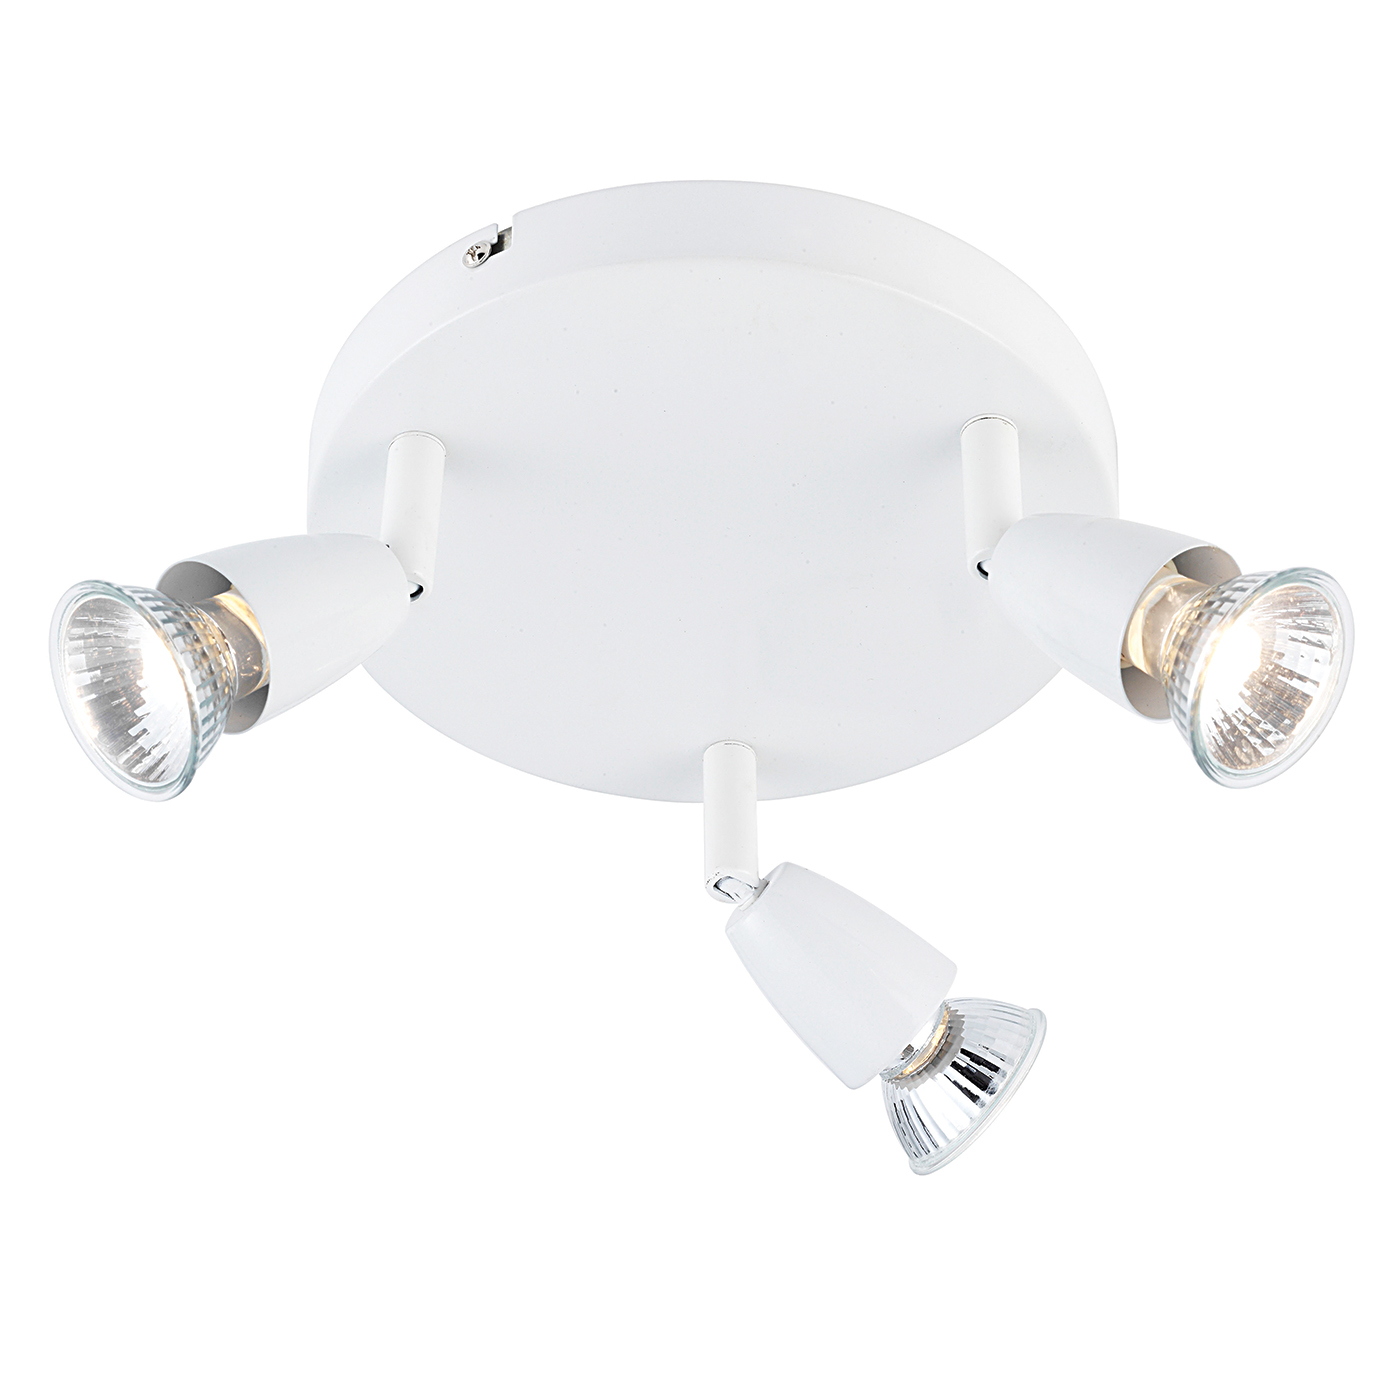 Endon Amalfi ceiling spotlight round 3x 50W Gloss white